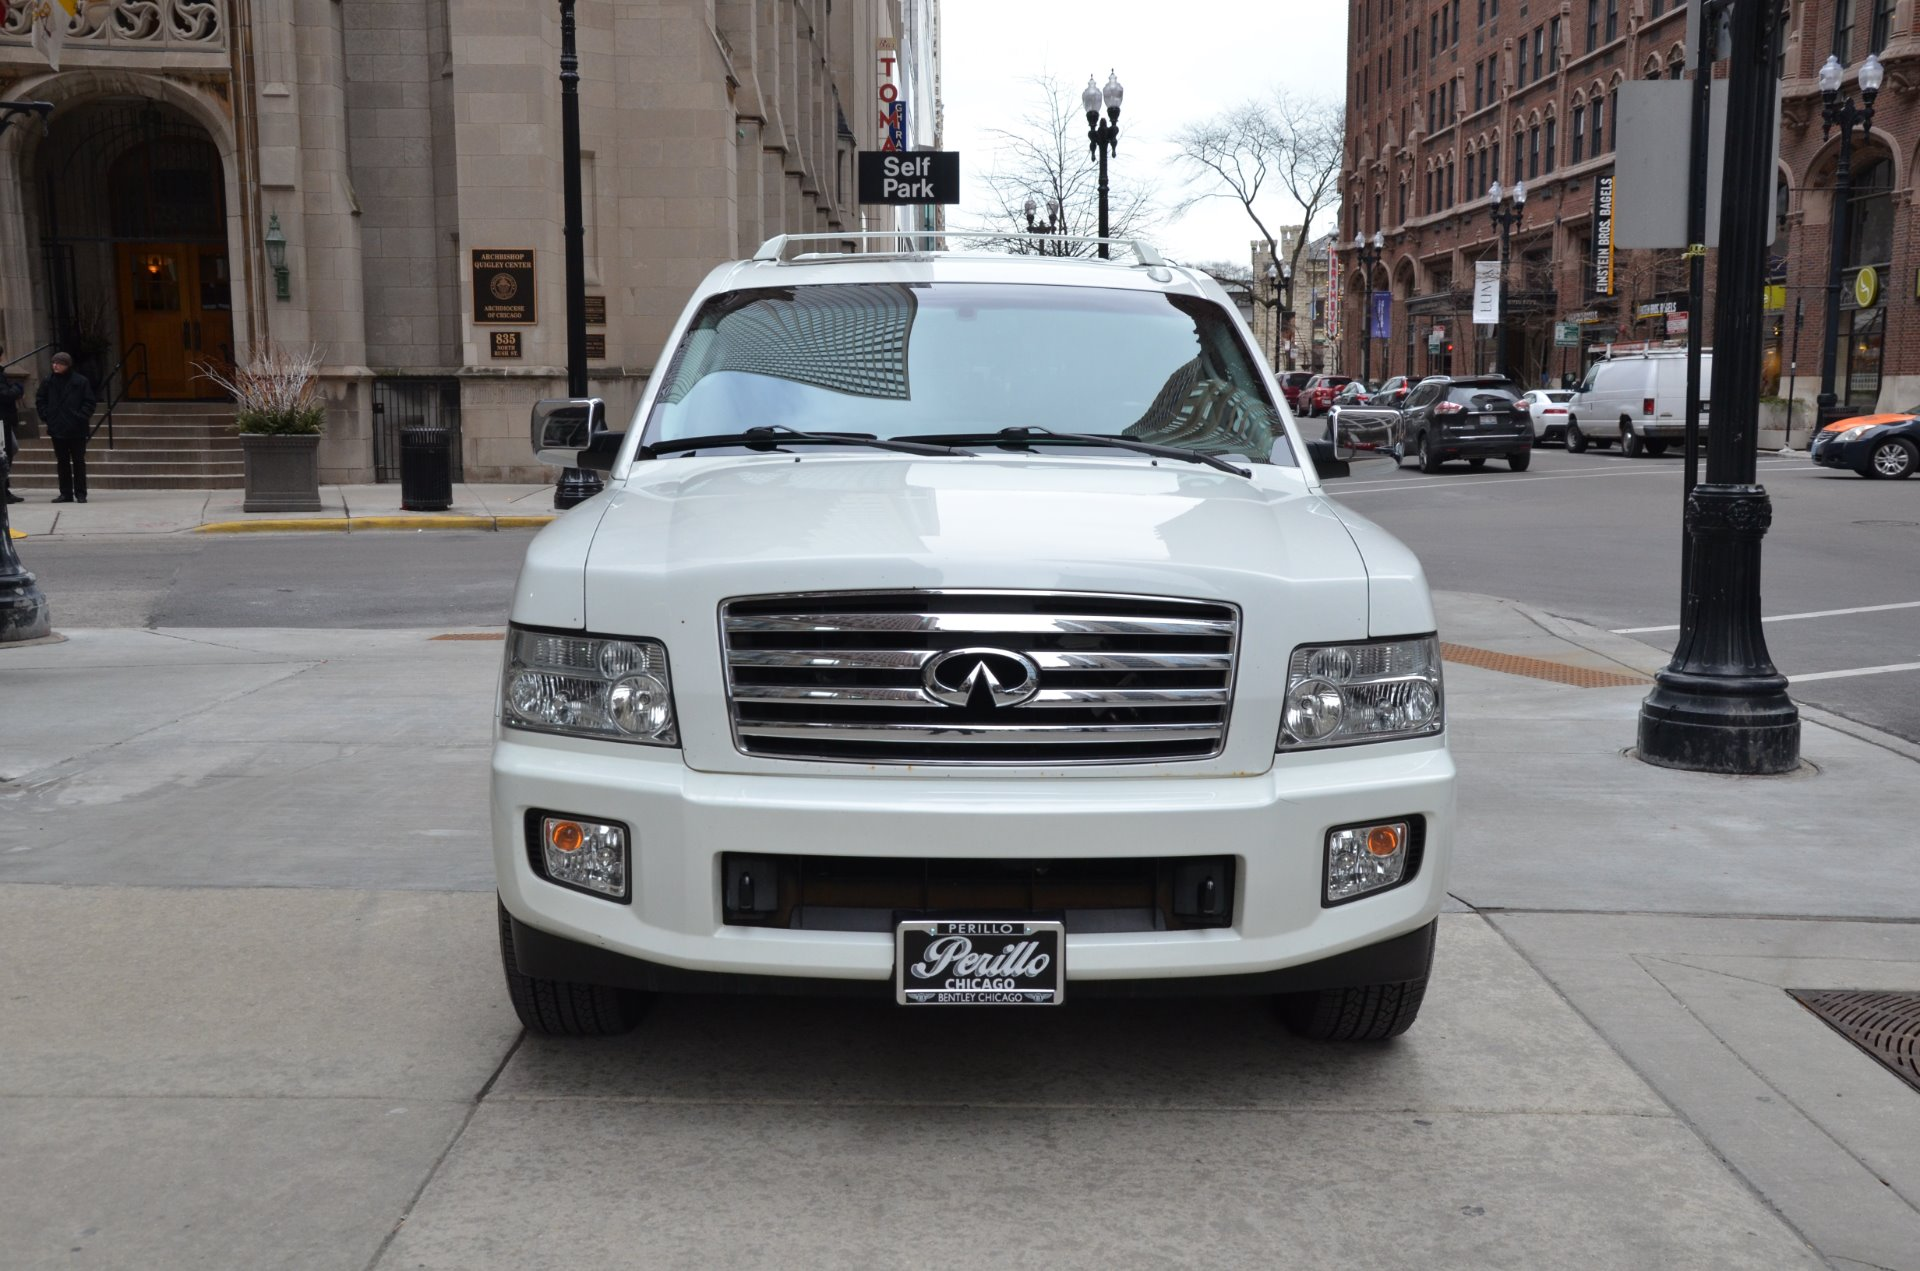 2006 Infiniti Qx56 Stock R209ba For Sale Near Chicago